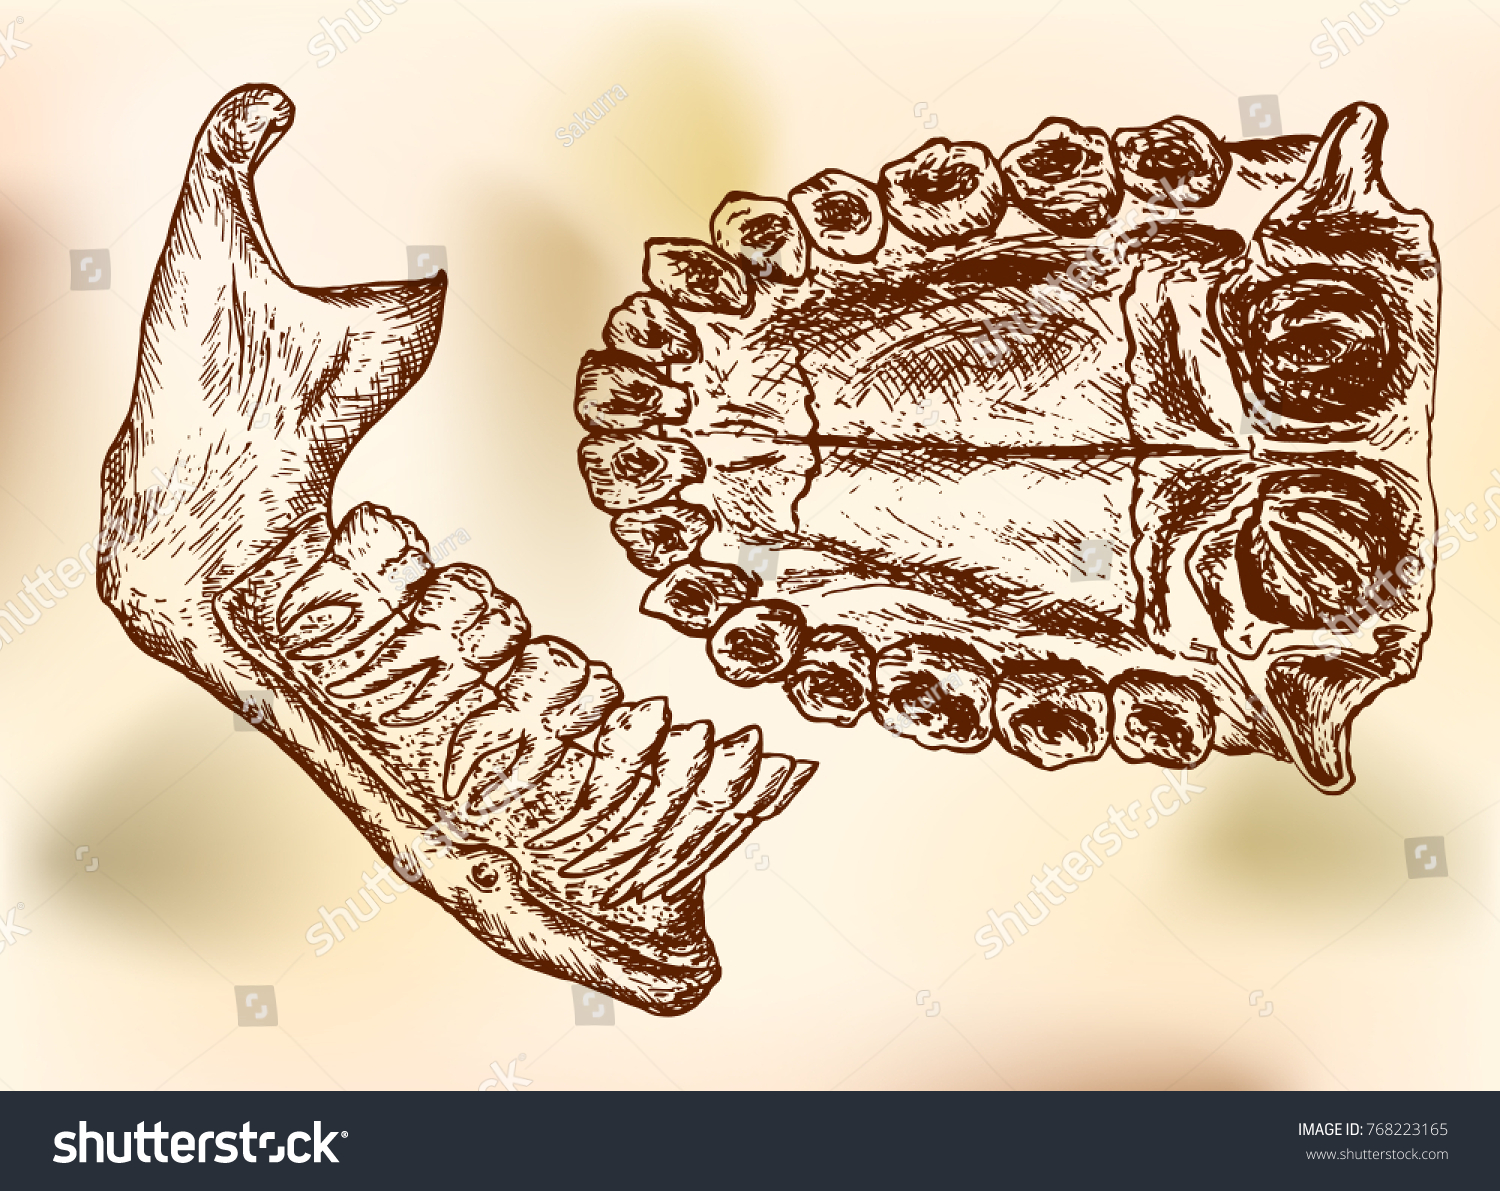 Mandible lower jawbone view teeth upper stock vector 768223165 the mandible lower jawbone and view of teeth in the upper jaw drawing biocorpaavc Image collections